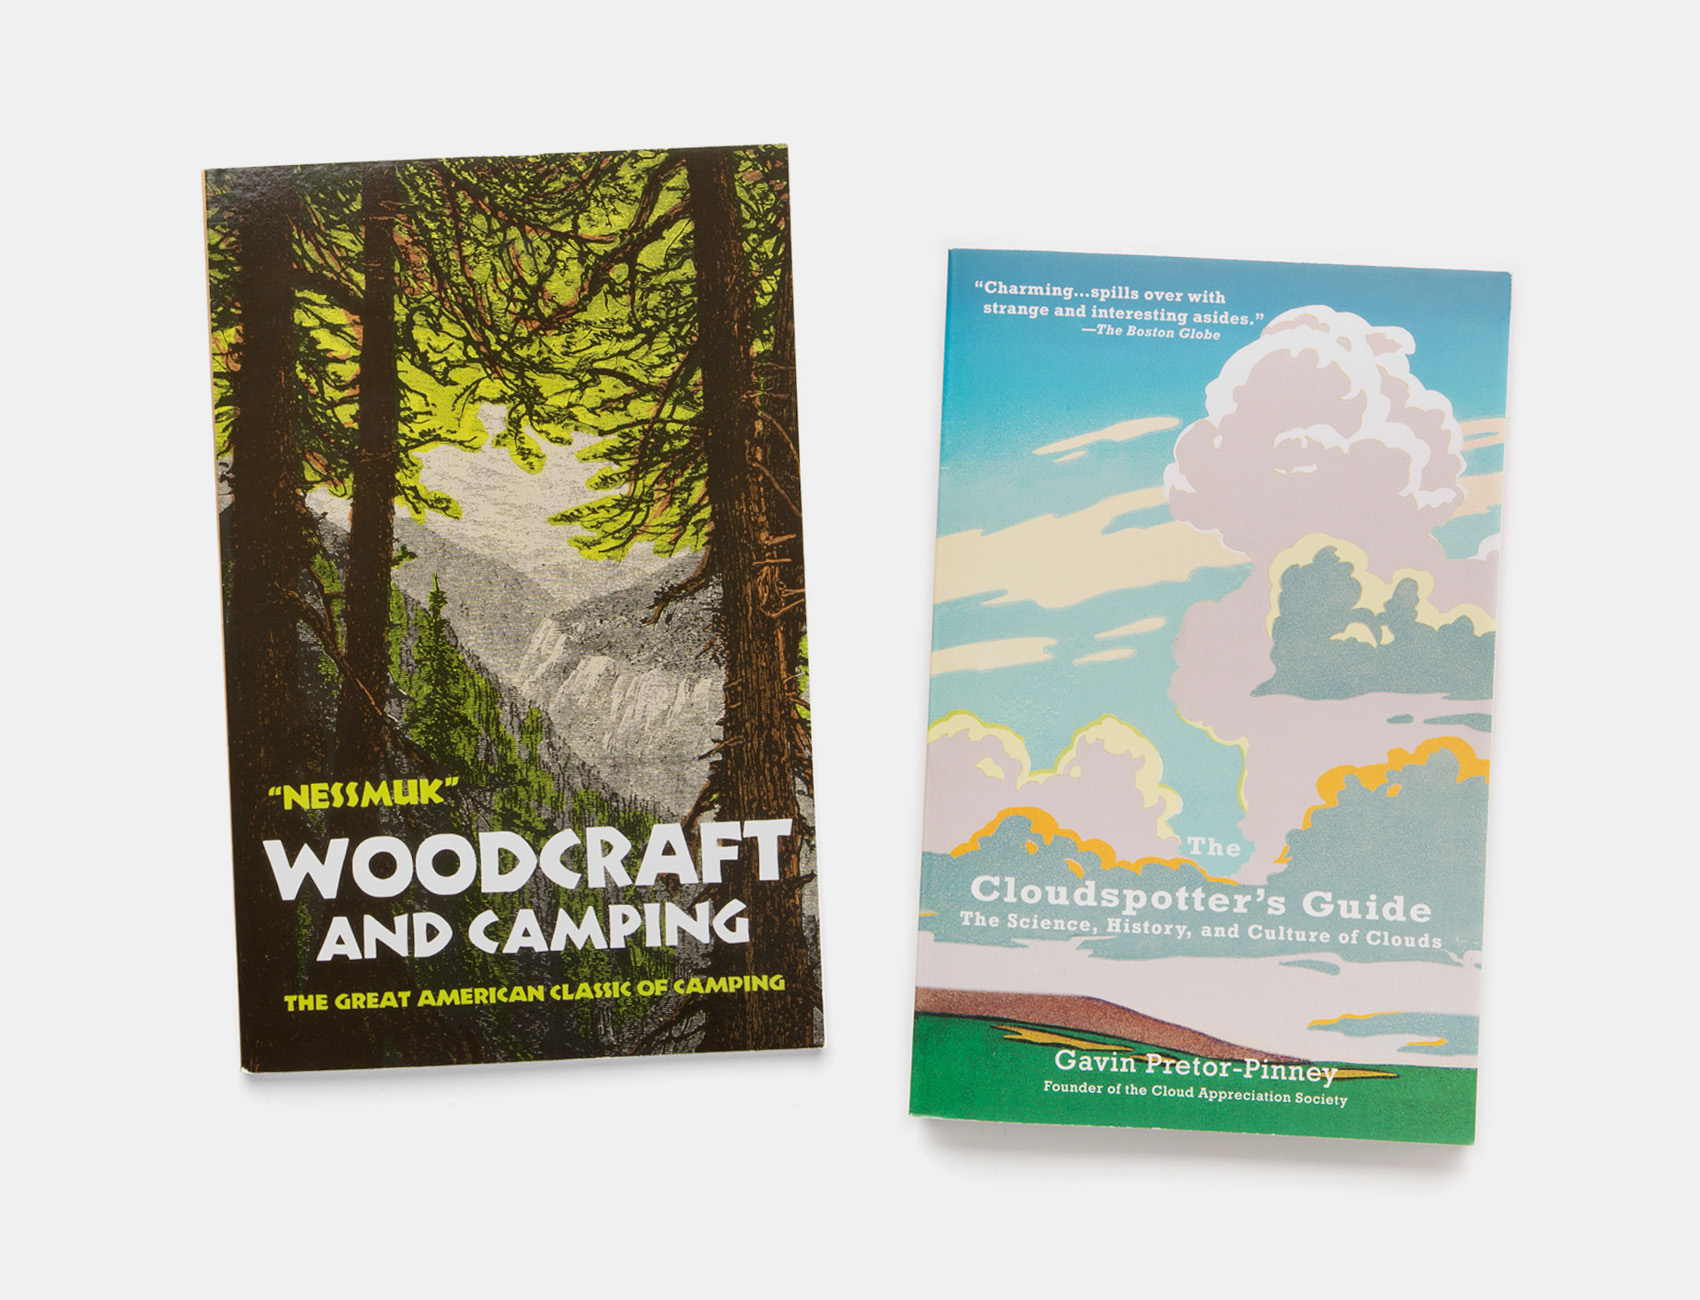 Woodcraft and Camping - Cloudspotters Guide